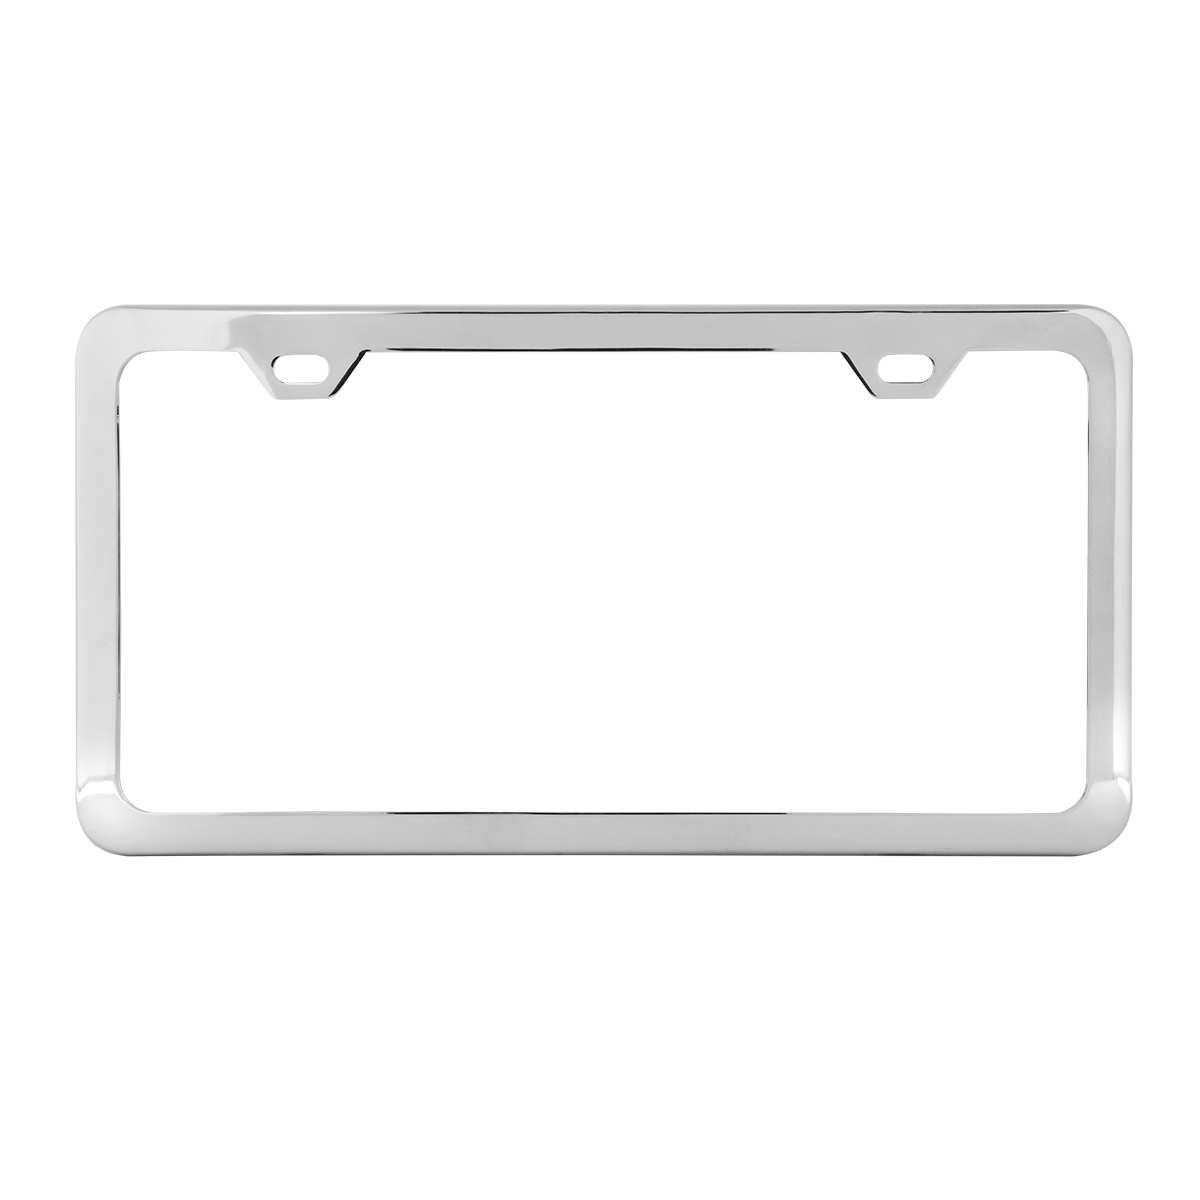 60401 Plain Polished Stainless Steel 2 Hole License Plate Frame